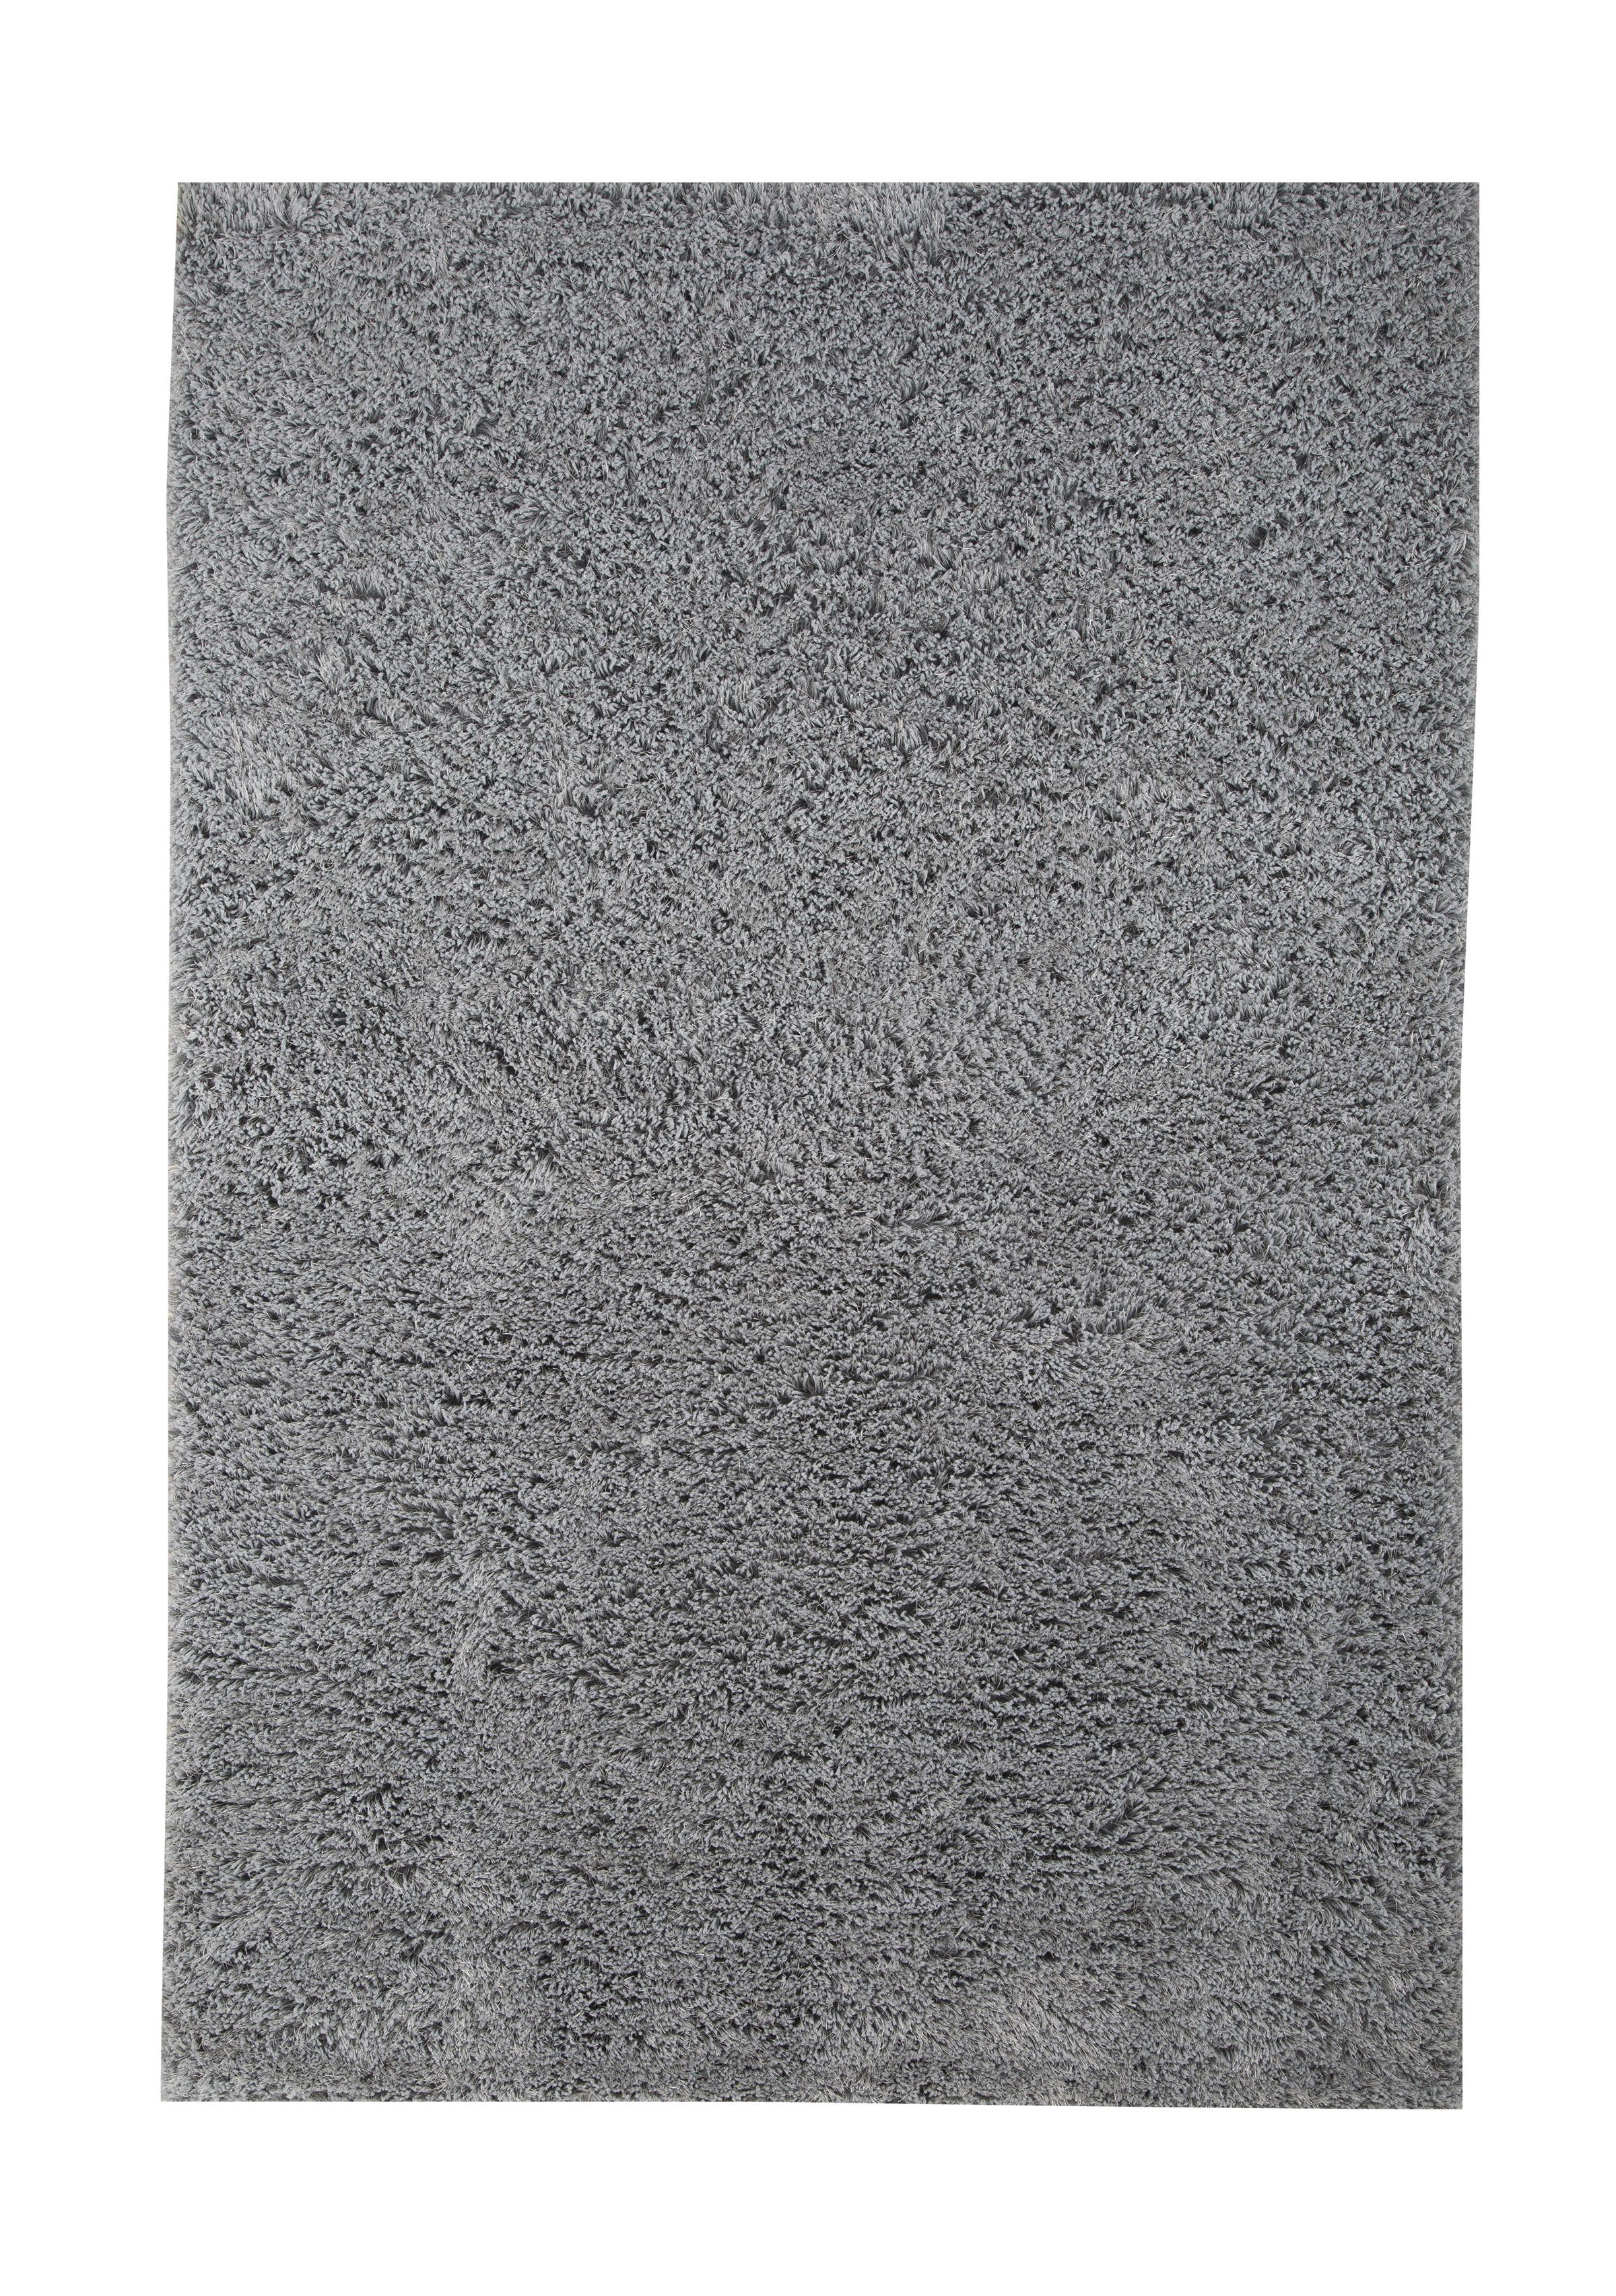 Signature Design by Ashley Transitional Area Rugs Alonso Gray Medium Rug - Item Number: R400522